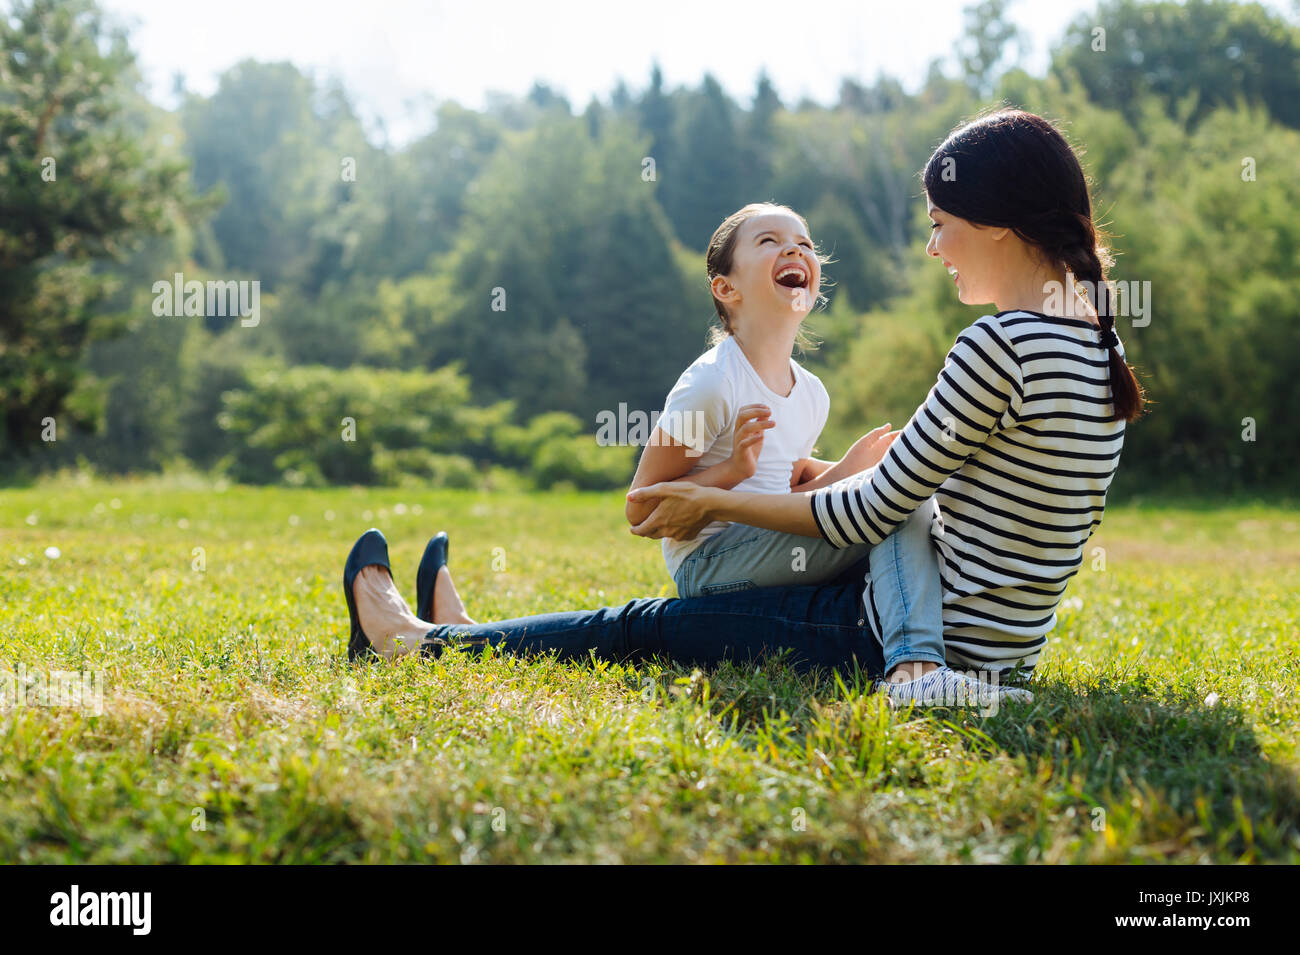 Cheerful daughter and mother laughing together outdoors - Stock Image